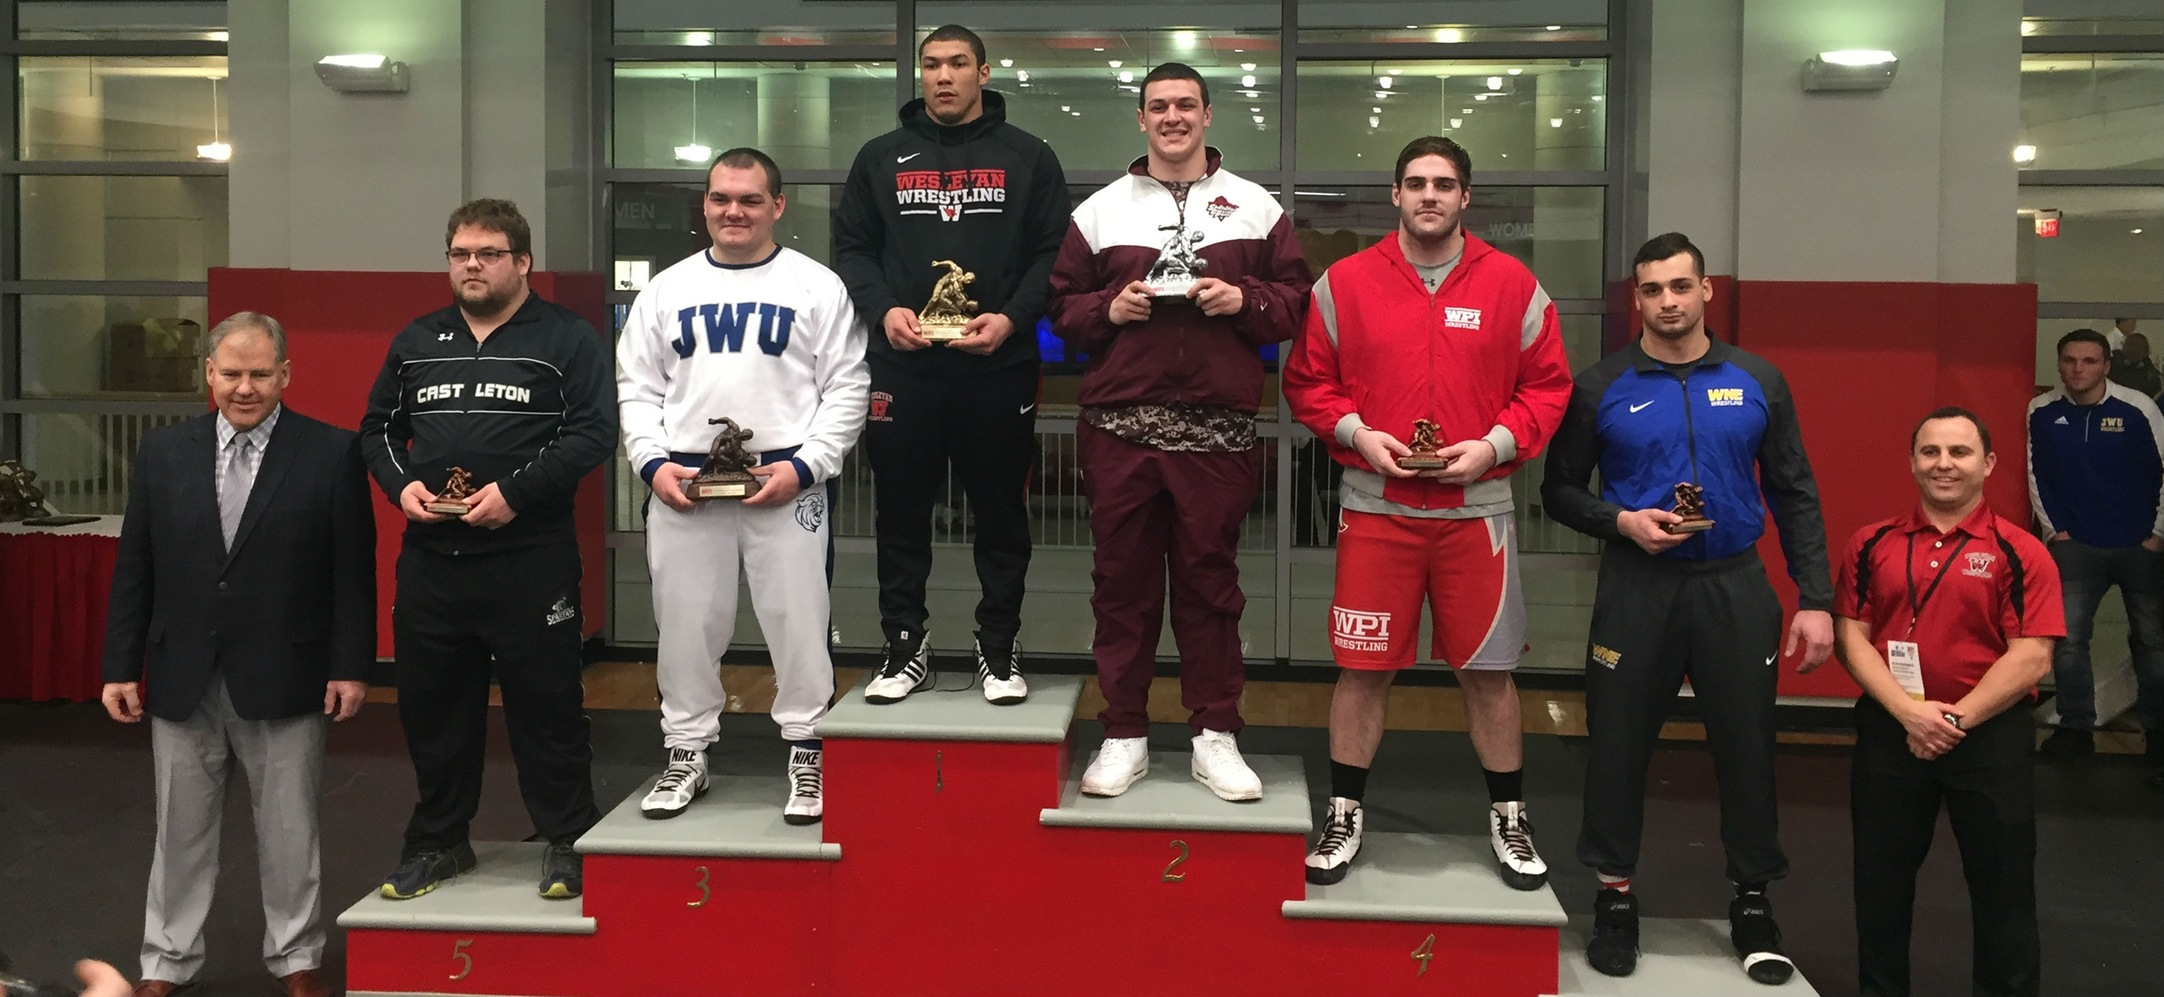 Fusco Earns Spot at NCAA Division III Championship With Runner-Up Finish at 285; Wrestling Takes 10th Overall at Regionals